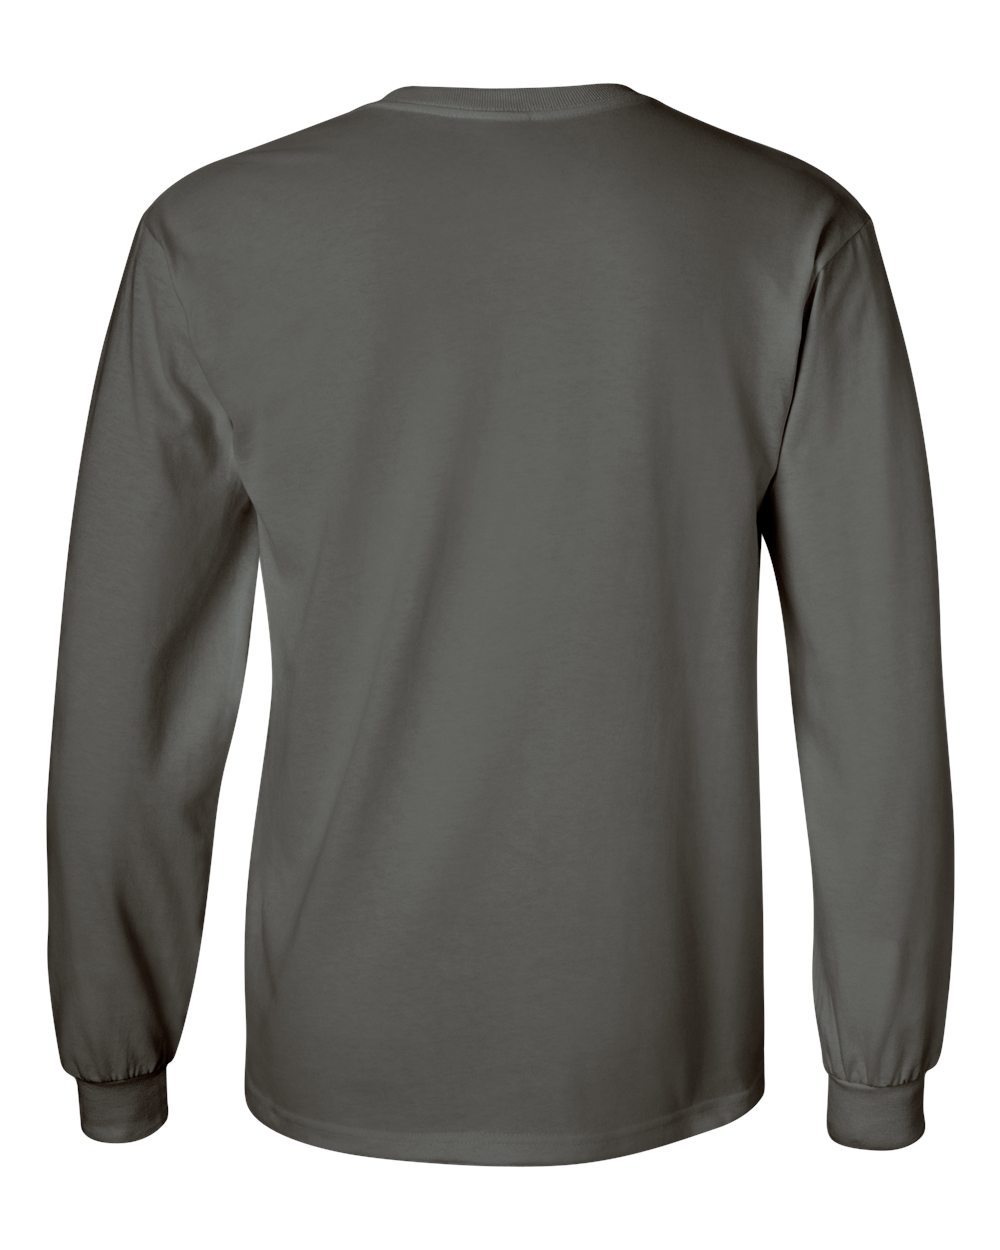 Gildan-Men-039-s-Ultra-Cotton-6-oz-Long-Sleeve-T-Shirt-G240-S-5XL thumbnail 20